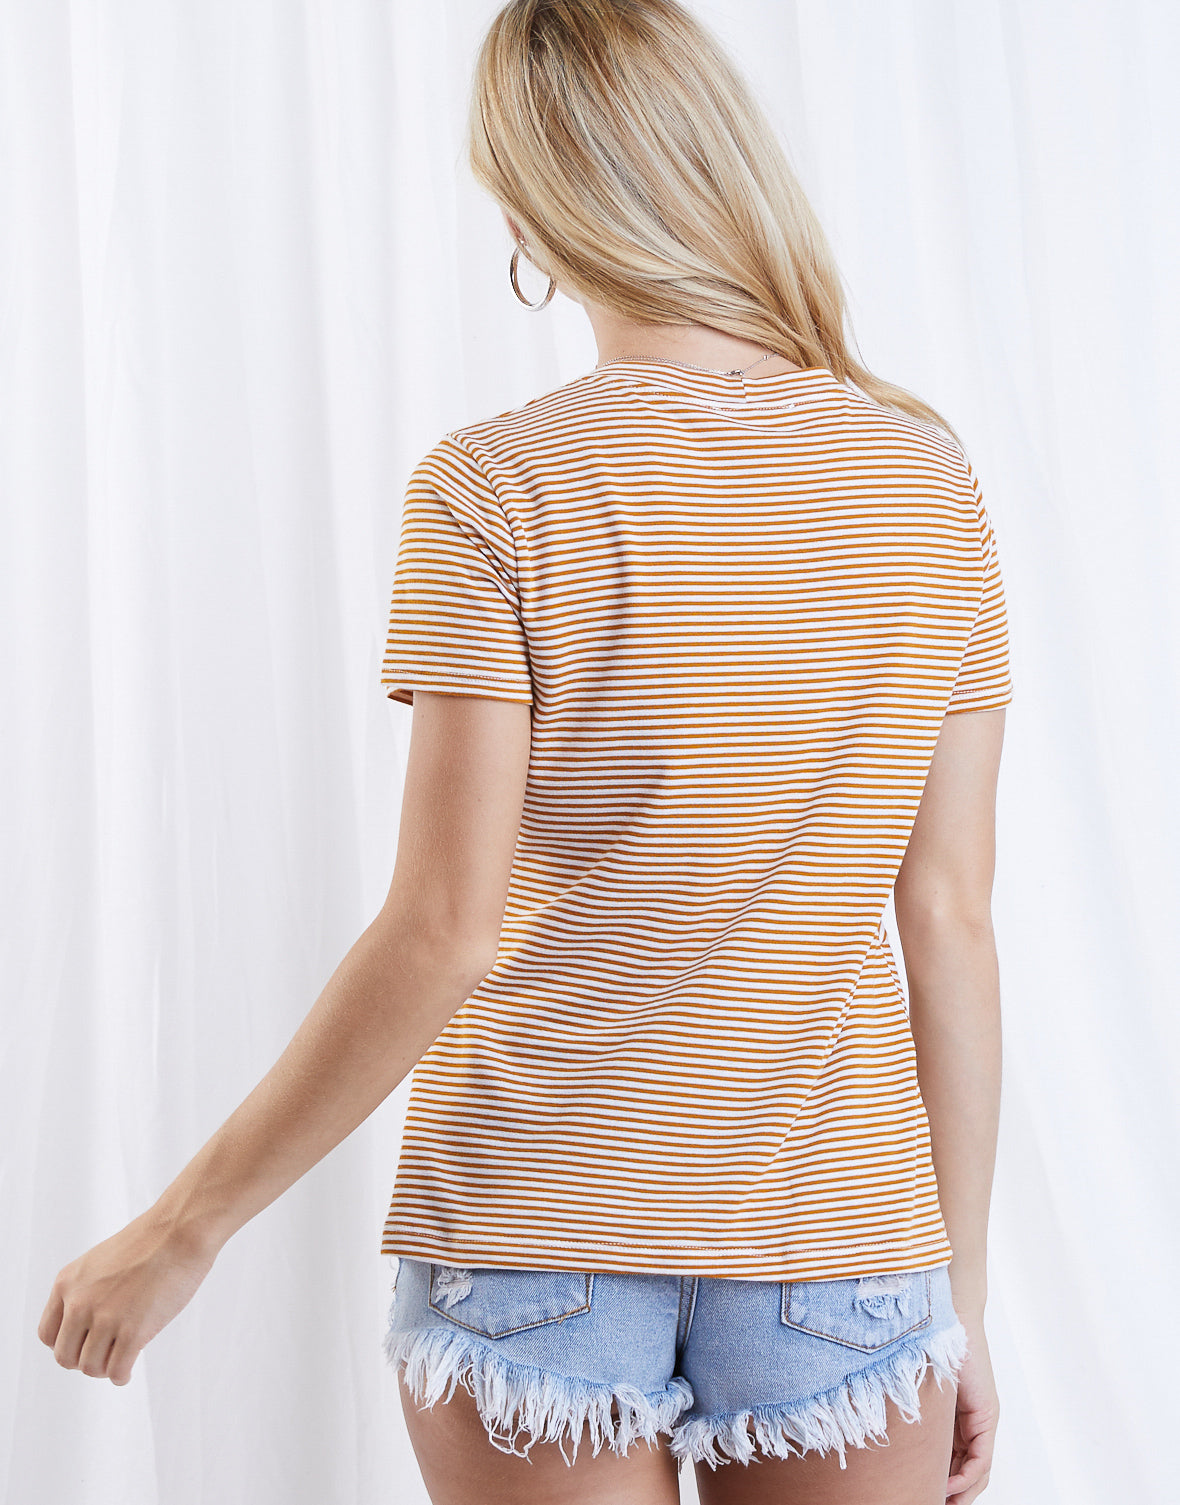 Mellow Days Knotted Top